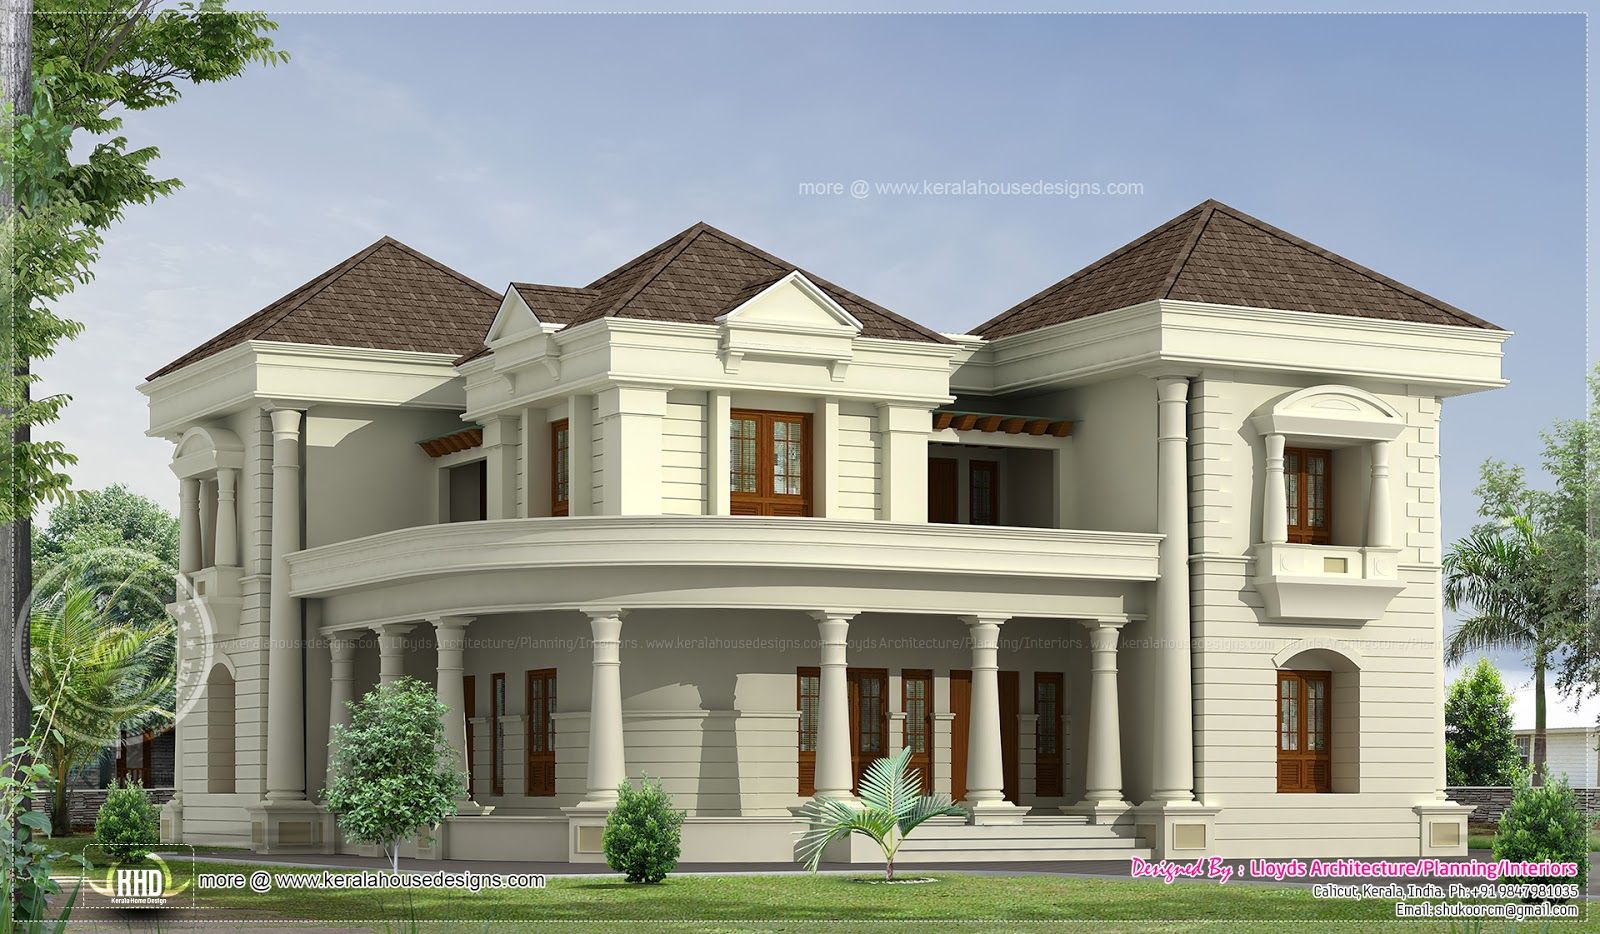 Modern bungalows bedroom luxurious bungalow floor plan for 5 bedroom house designs uk